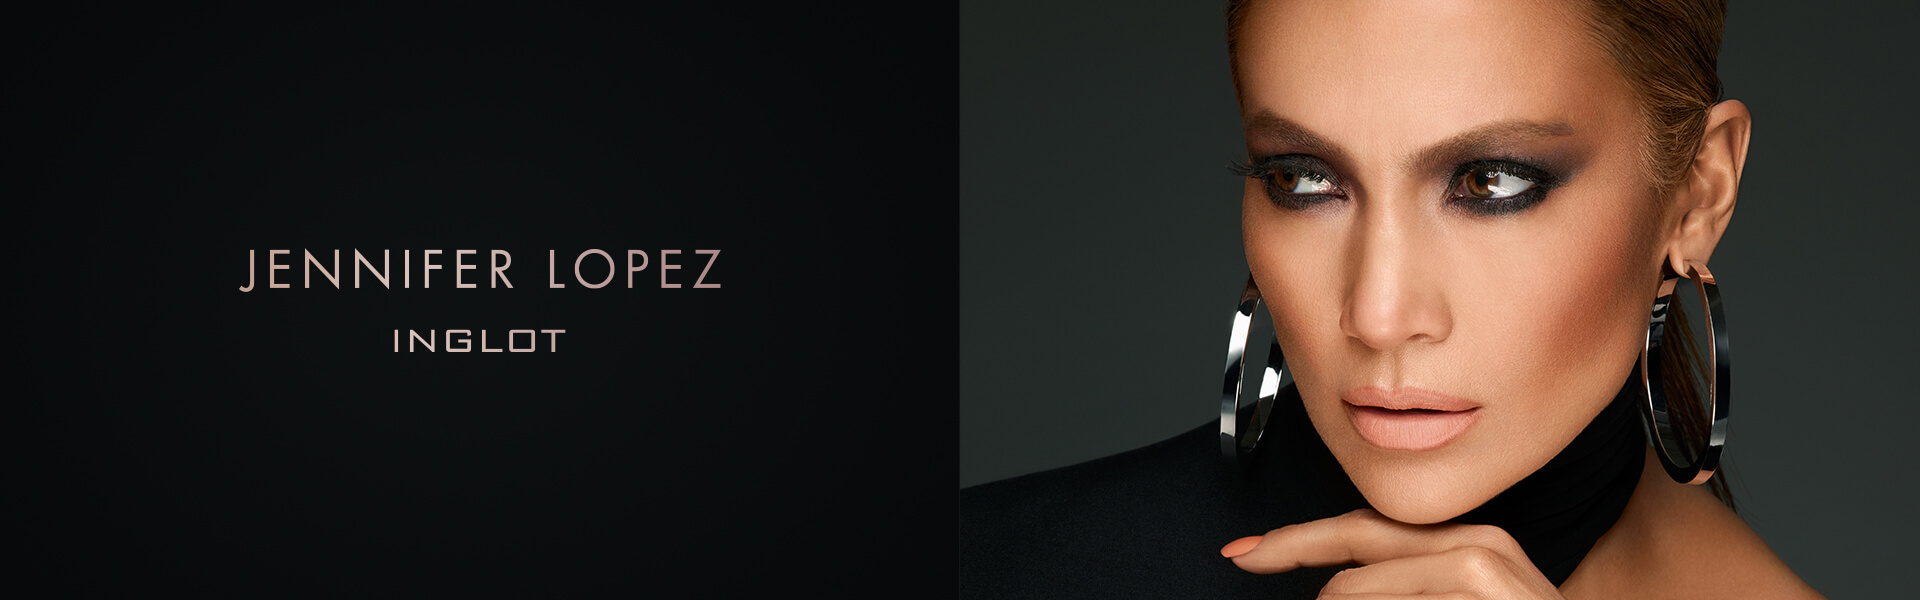 jennifer-lopez-inglot---fourth-look-1920x600px